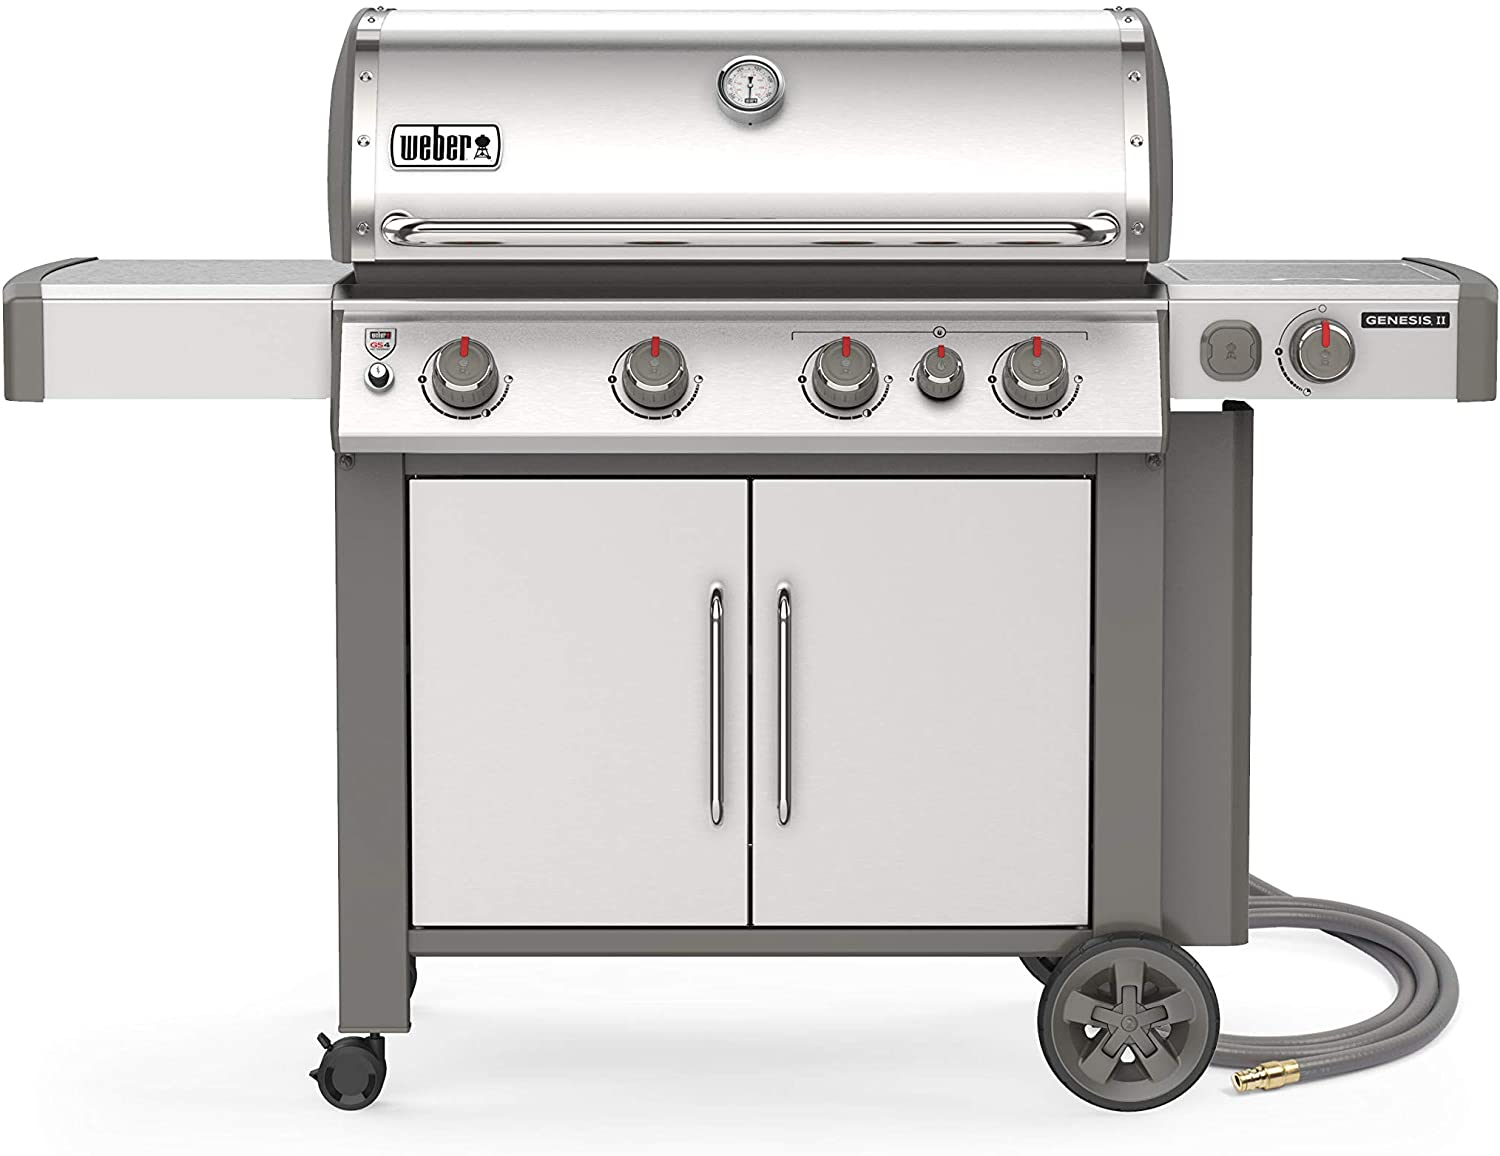 Weber-Stephen Company Genesis II S-435 Natural Gas Grill review